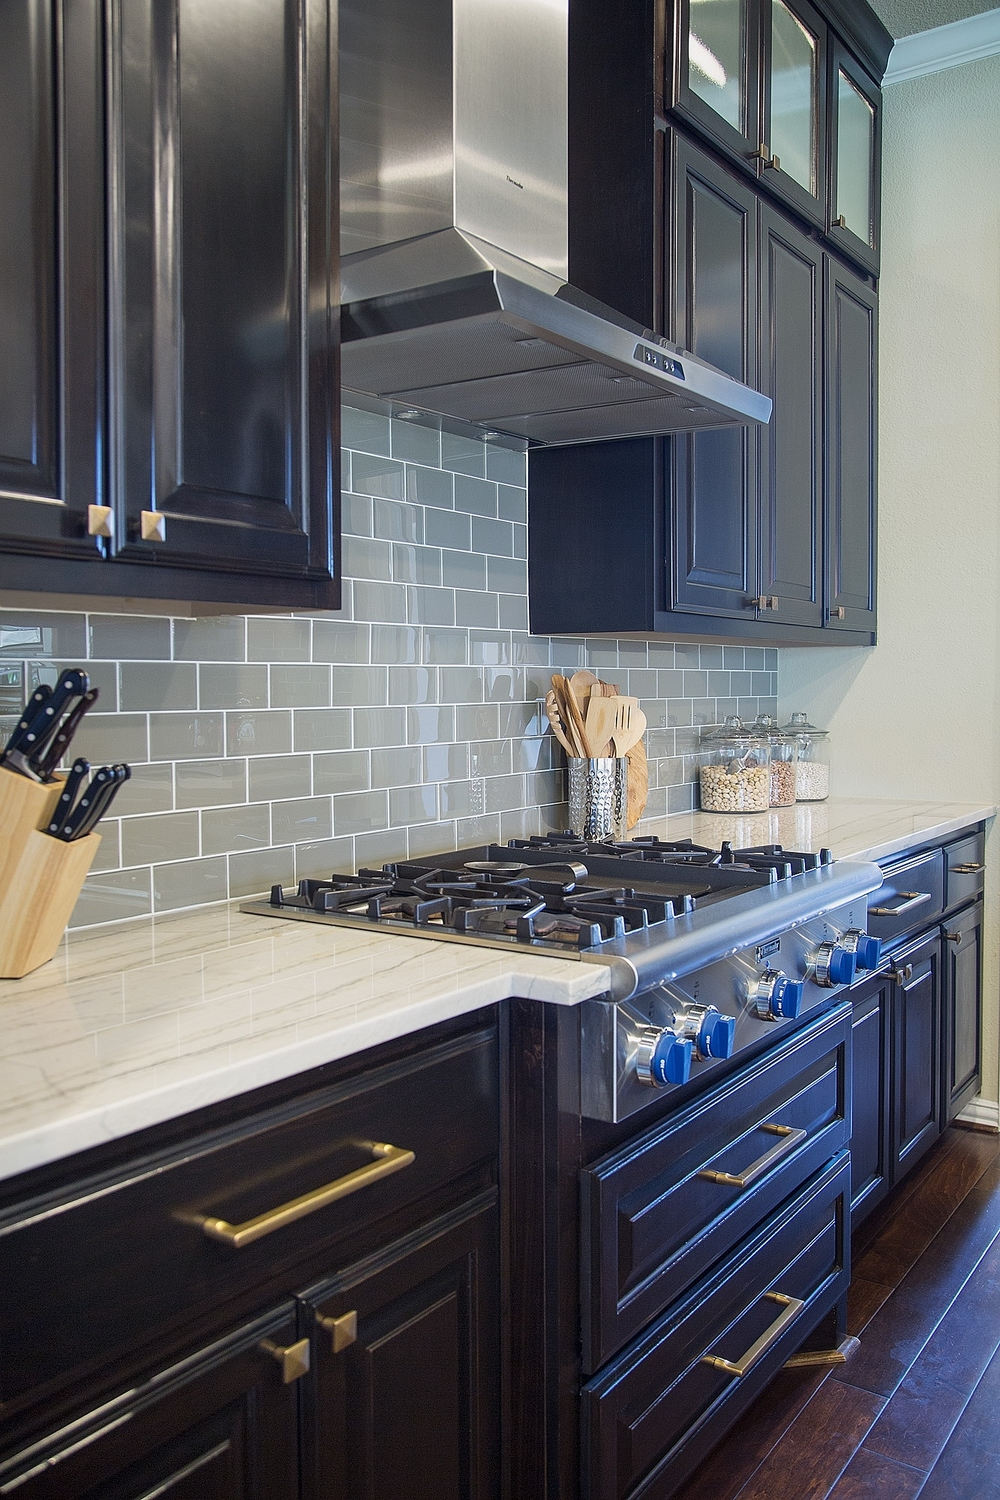 Kitchen remodel; stove; cabinetry; countertop | Interior Designer: Carla Aston / Photography by Tori Aston